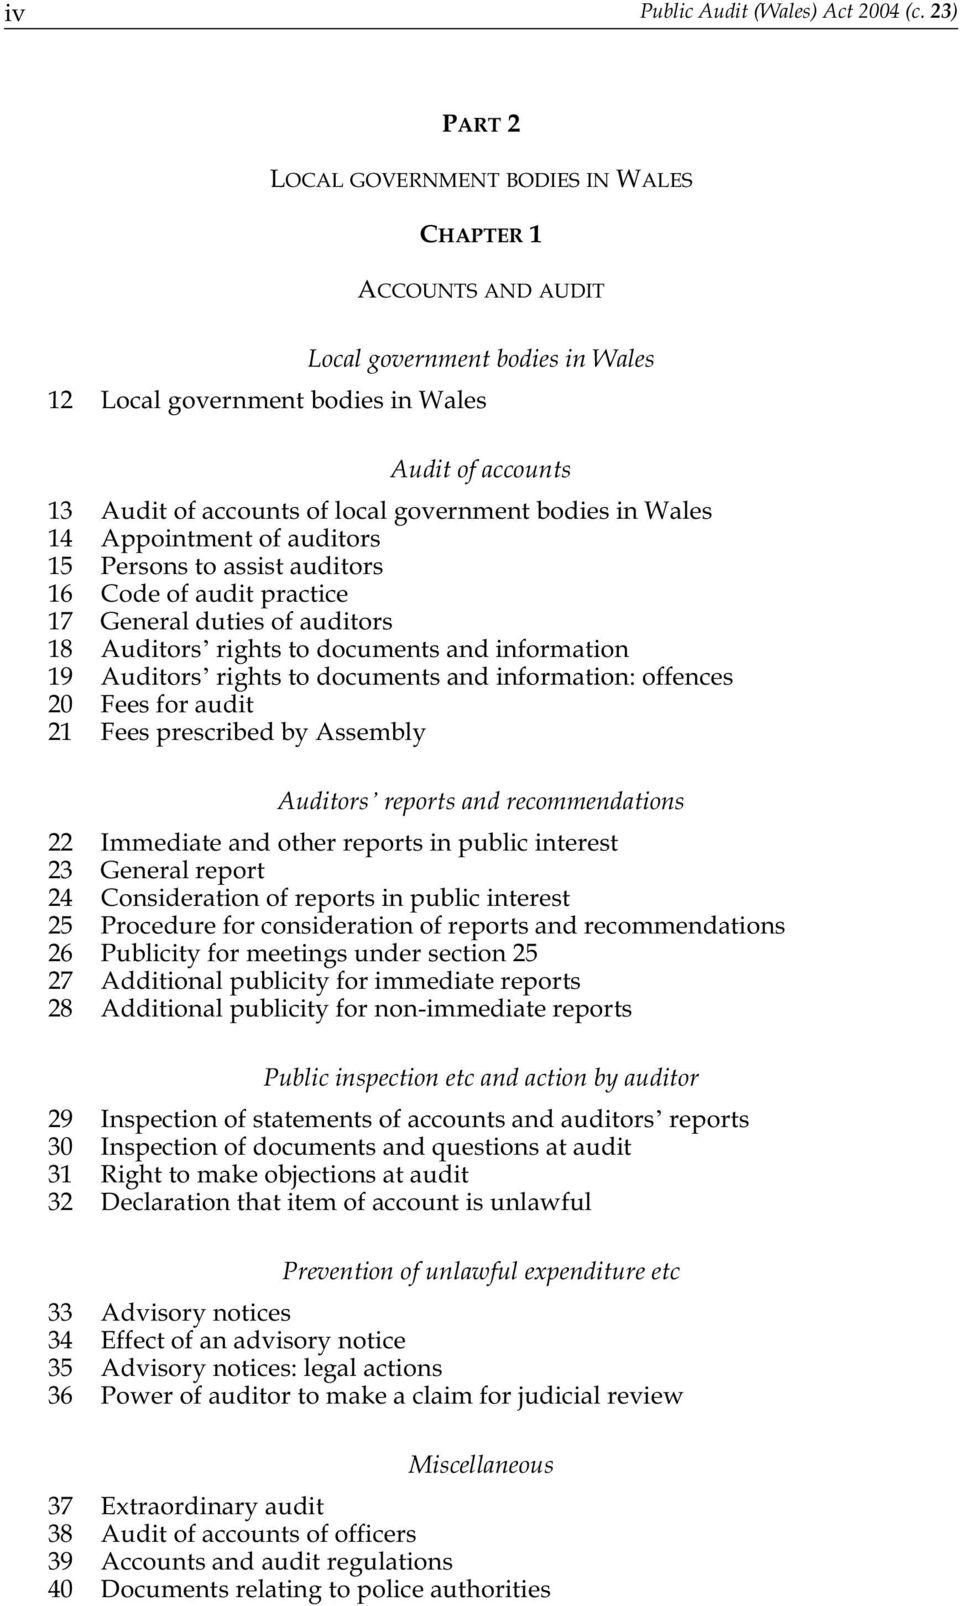 government bodies in Wales 14 Appointment of auditors 15 Persons to assist auditors 16 Code of audit practice 17 General duties of auditors 18 Auditors rights to documents and information 19 Auditors